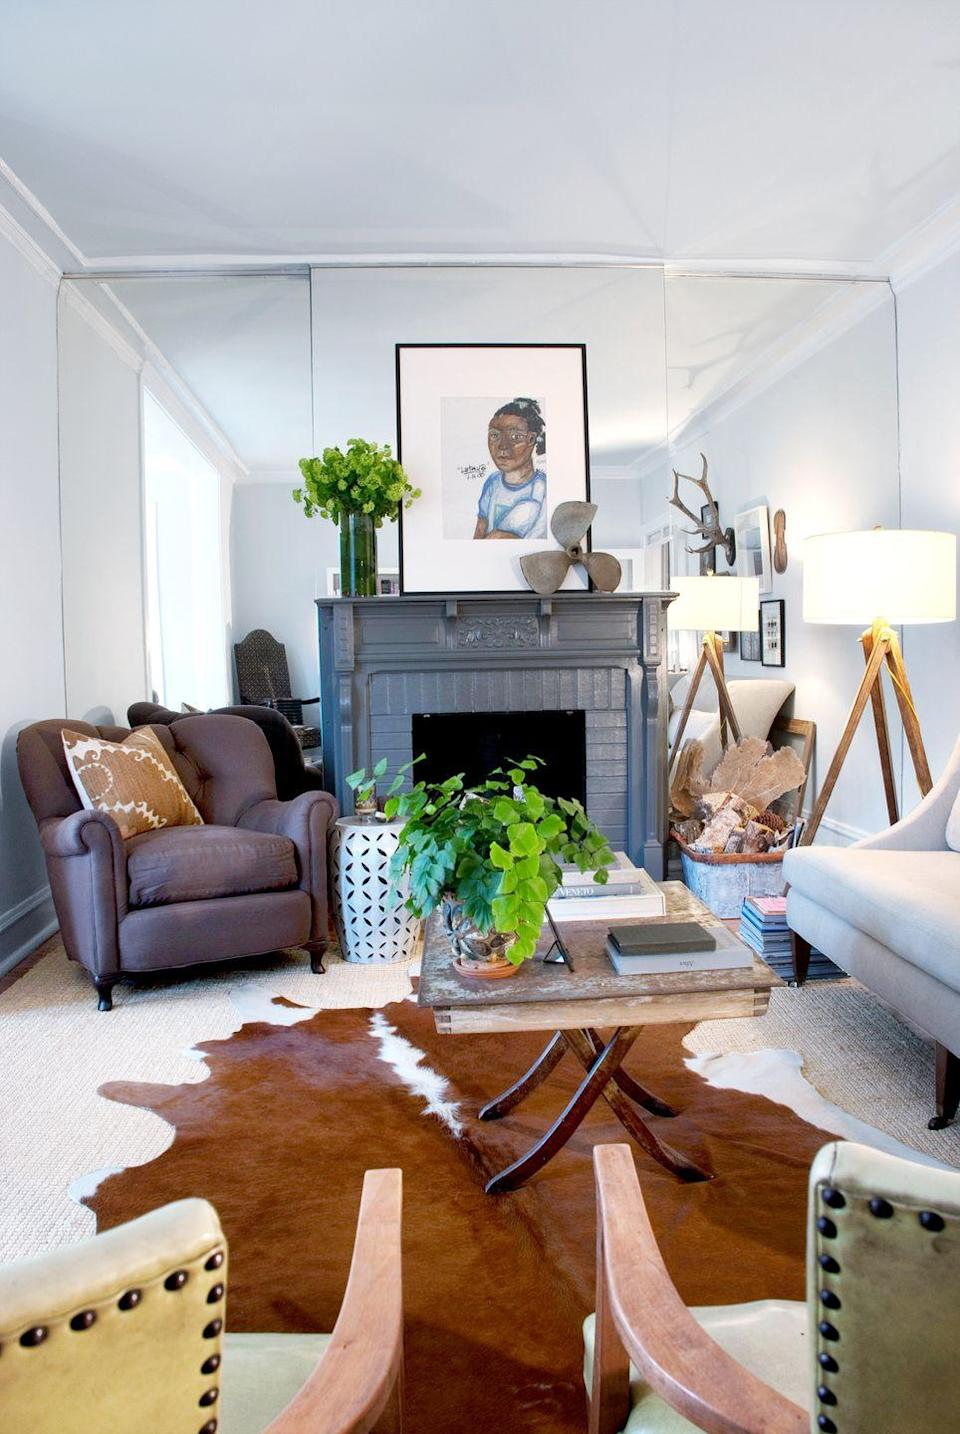 <p>Nothing about this living room screams disorganized, but should the homeowners accumulate more items throughout the years, there isn't really anywhere here to store them. </p>